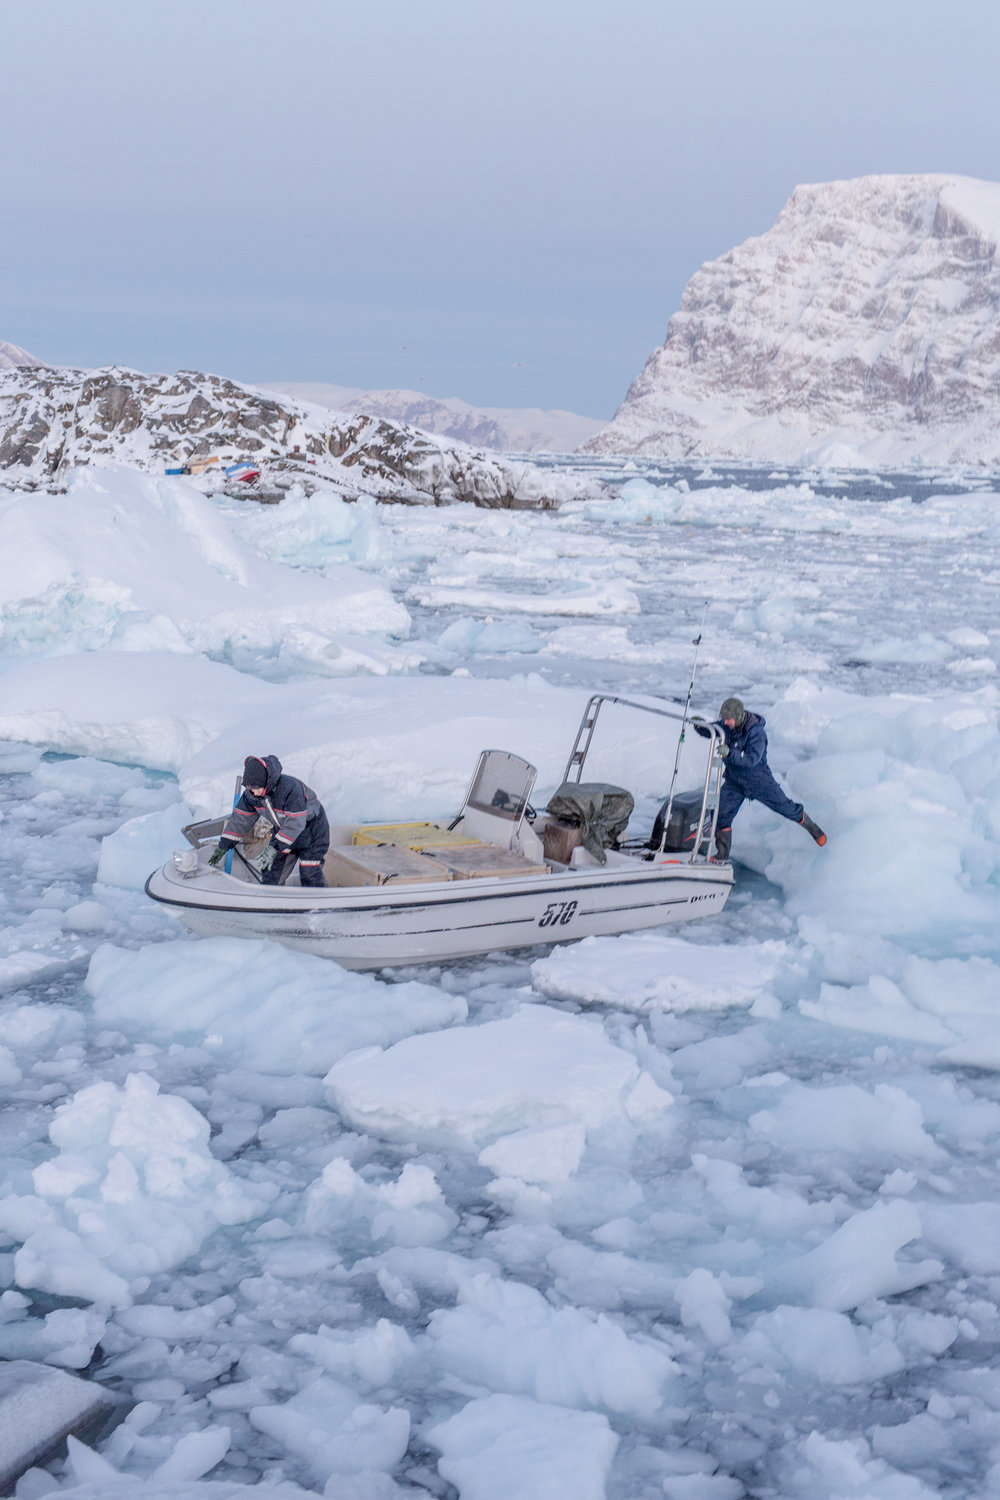 When the ice gets thicker around Uummannaq, it is difficult for the fisherman to navigate. In 2018, the sea around Uummannaq was frozen only in mid-February, alarmingly late compared to the years before, due to a very warm winter. The sea ice almost melted in the first week of March 2018 when Greenland was hit by the warmest temperatures ever recorded during that time of the year.